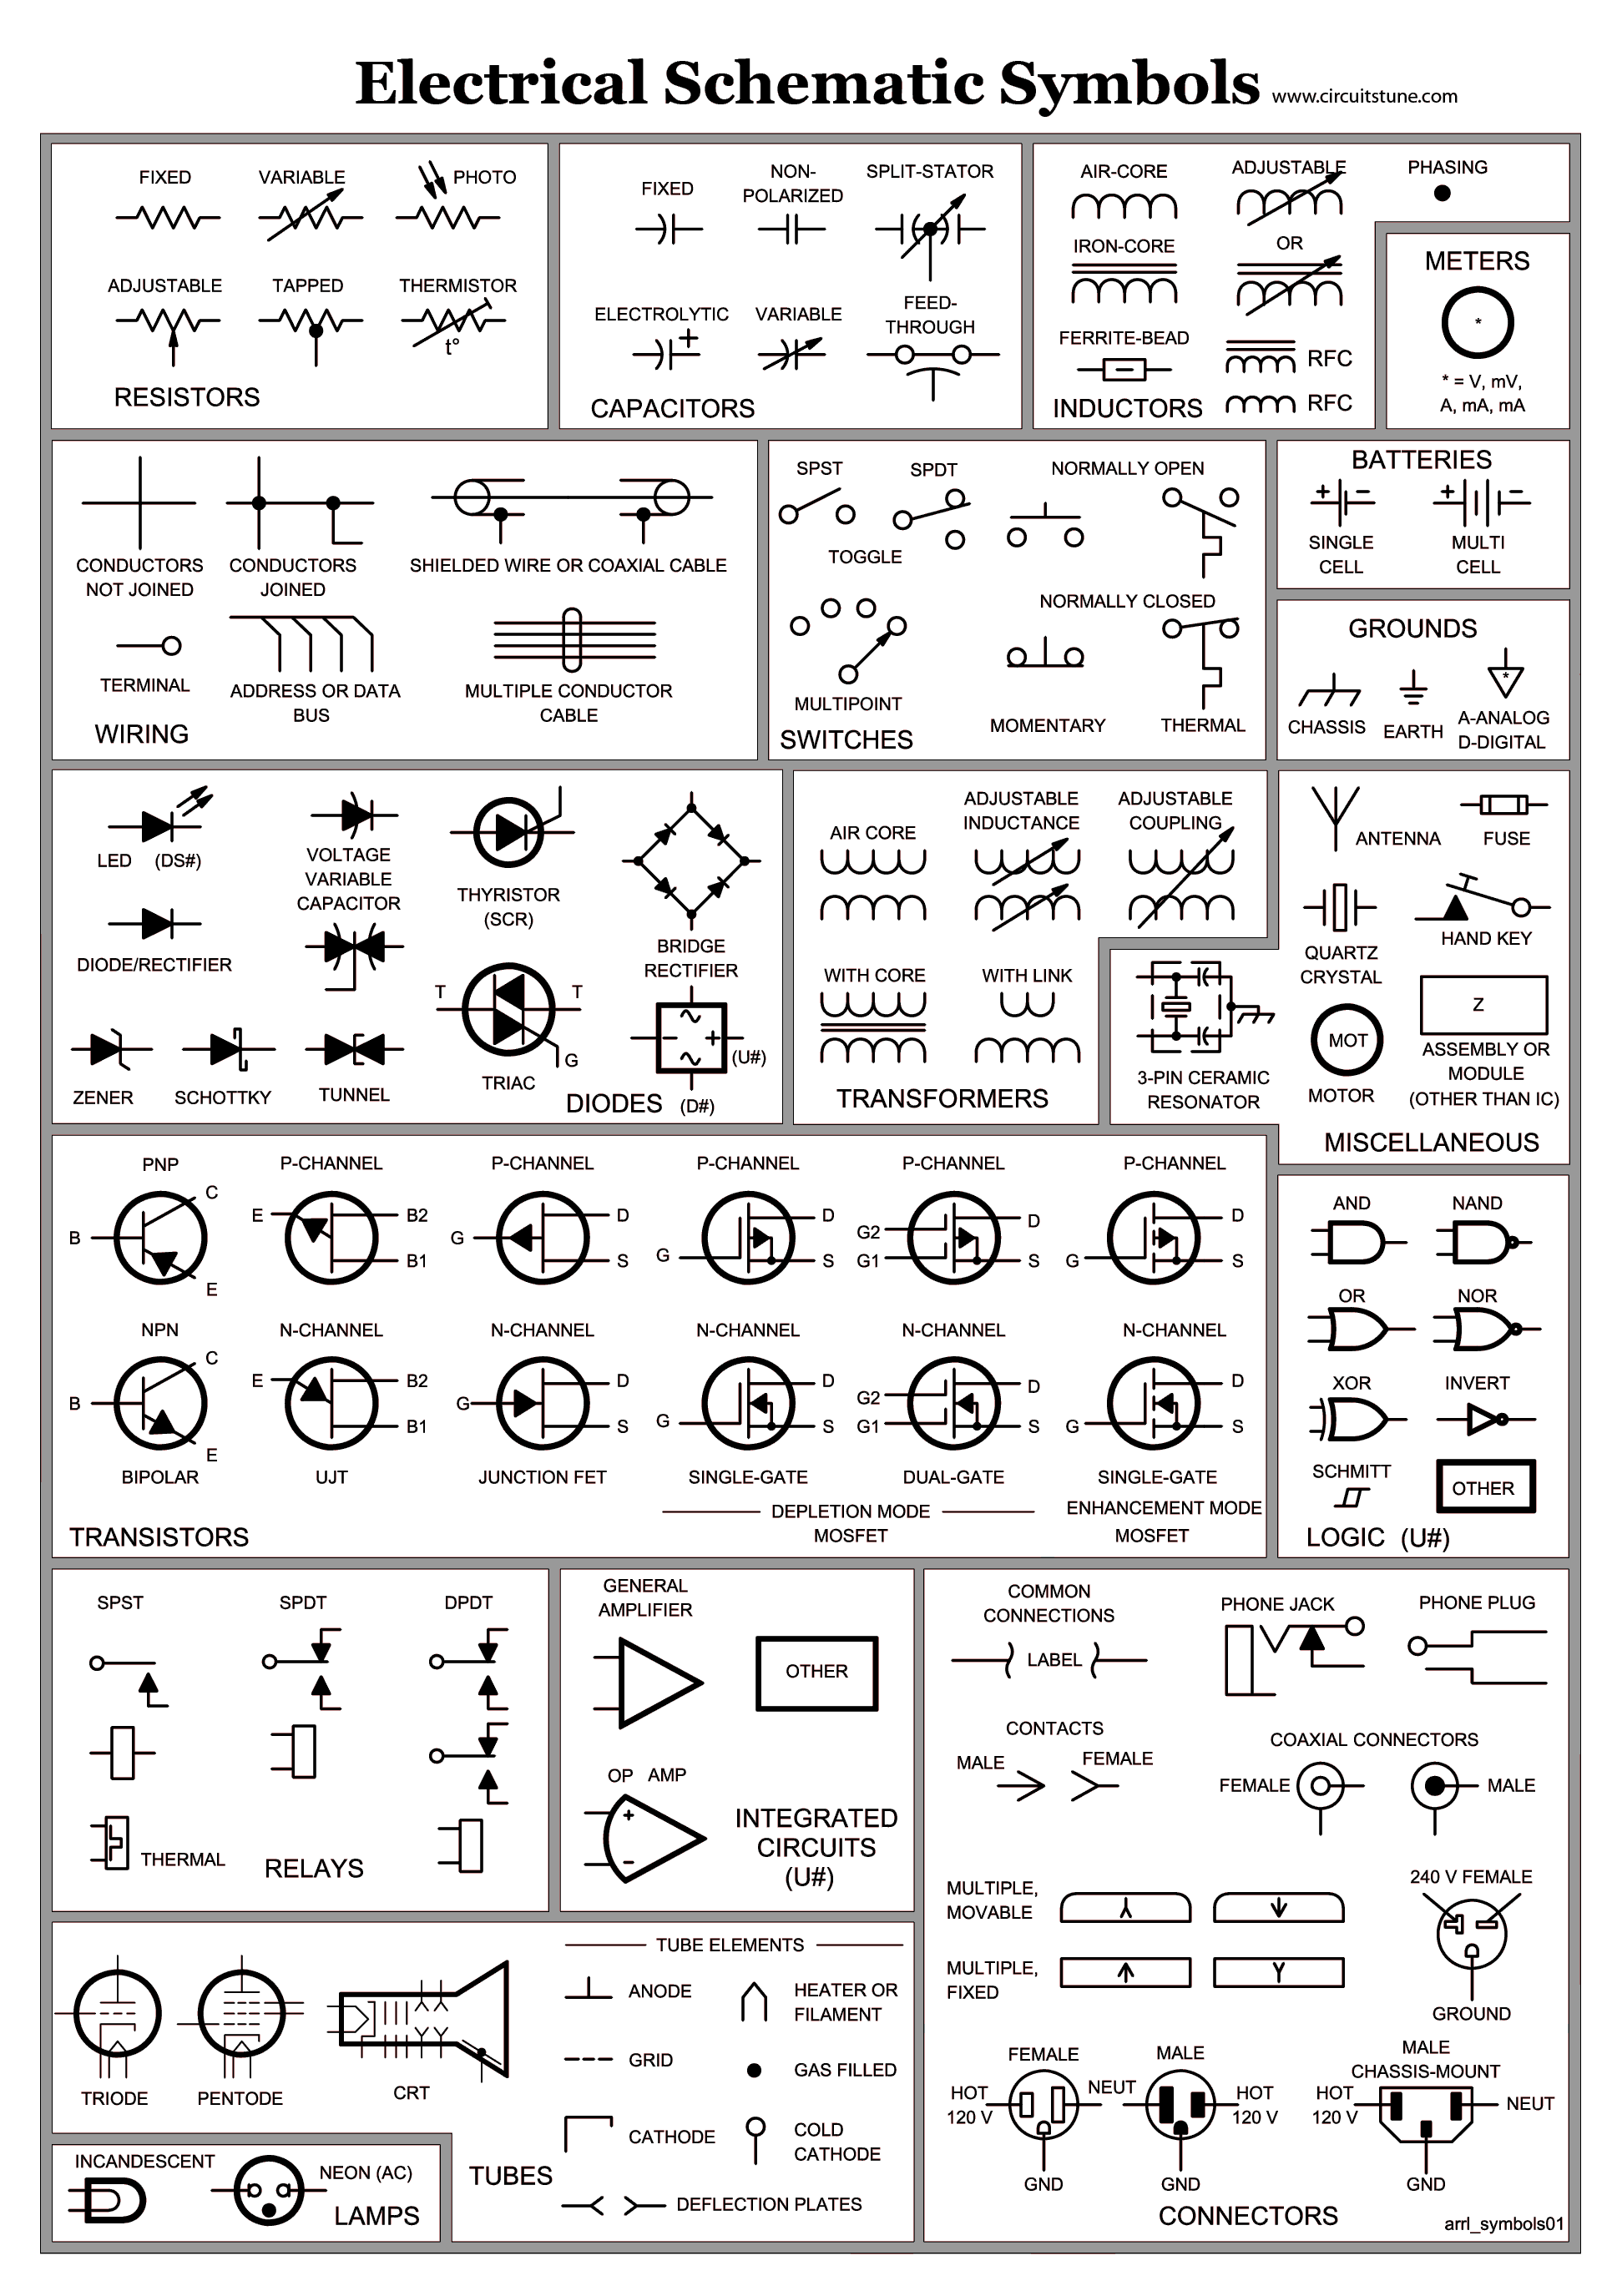 schematics diagram   google search   trans      pinterest   search    schematics diagram   google search   trans      pinterest   search  google search and google